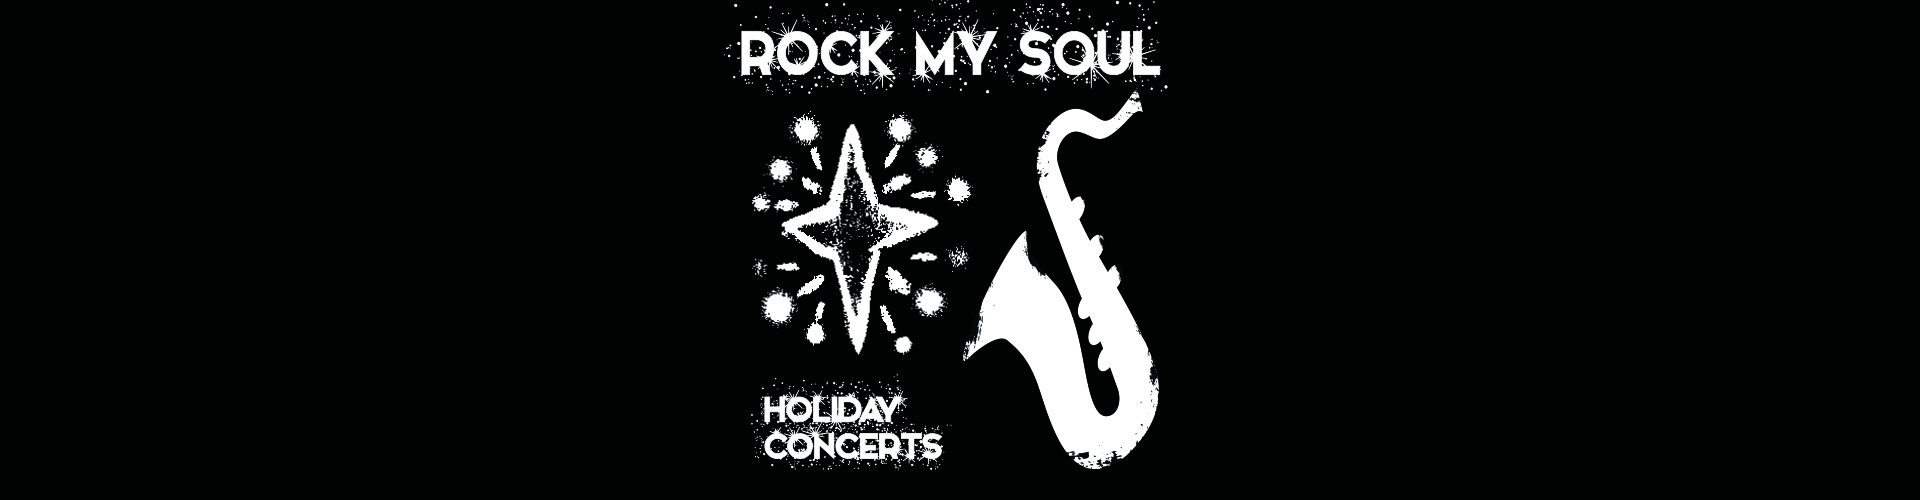 Rock My Soul 2016 Holiday Concerts